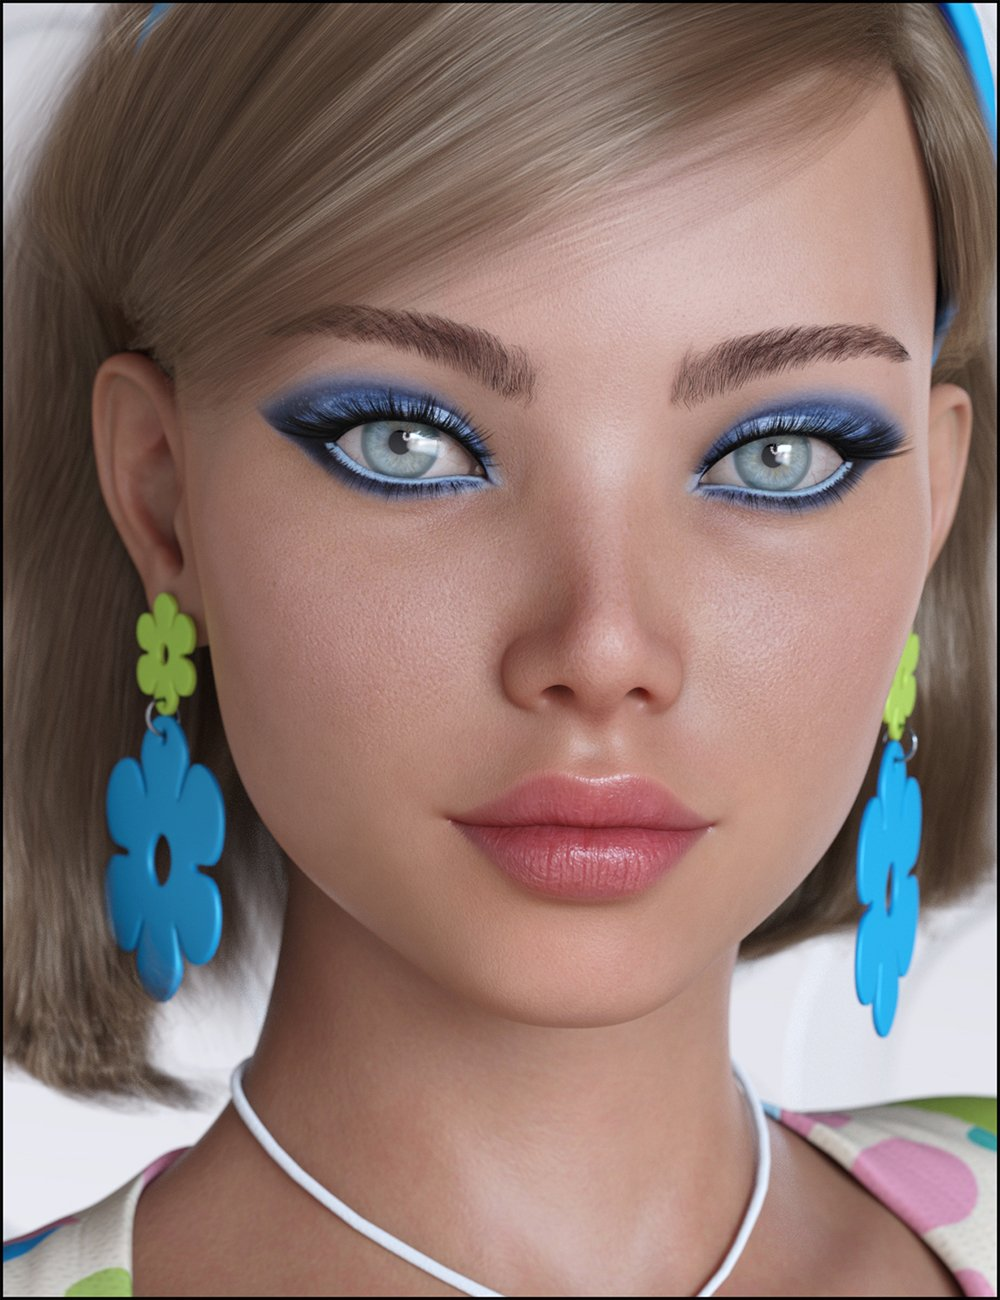 Dharma for Genesis 8 and 8.1 Female by: JessaiiDemonicaEvilius, 3D Models by Daz 3D